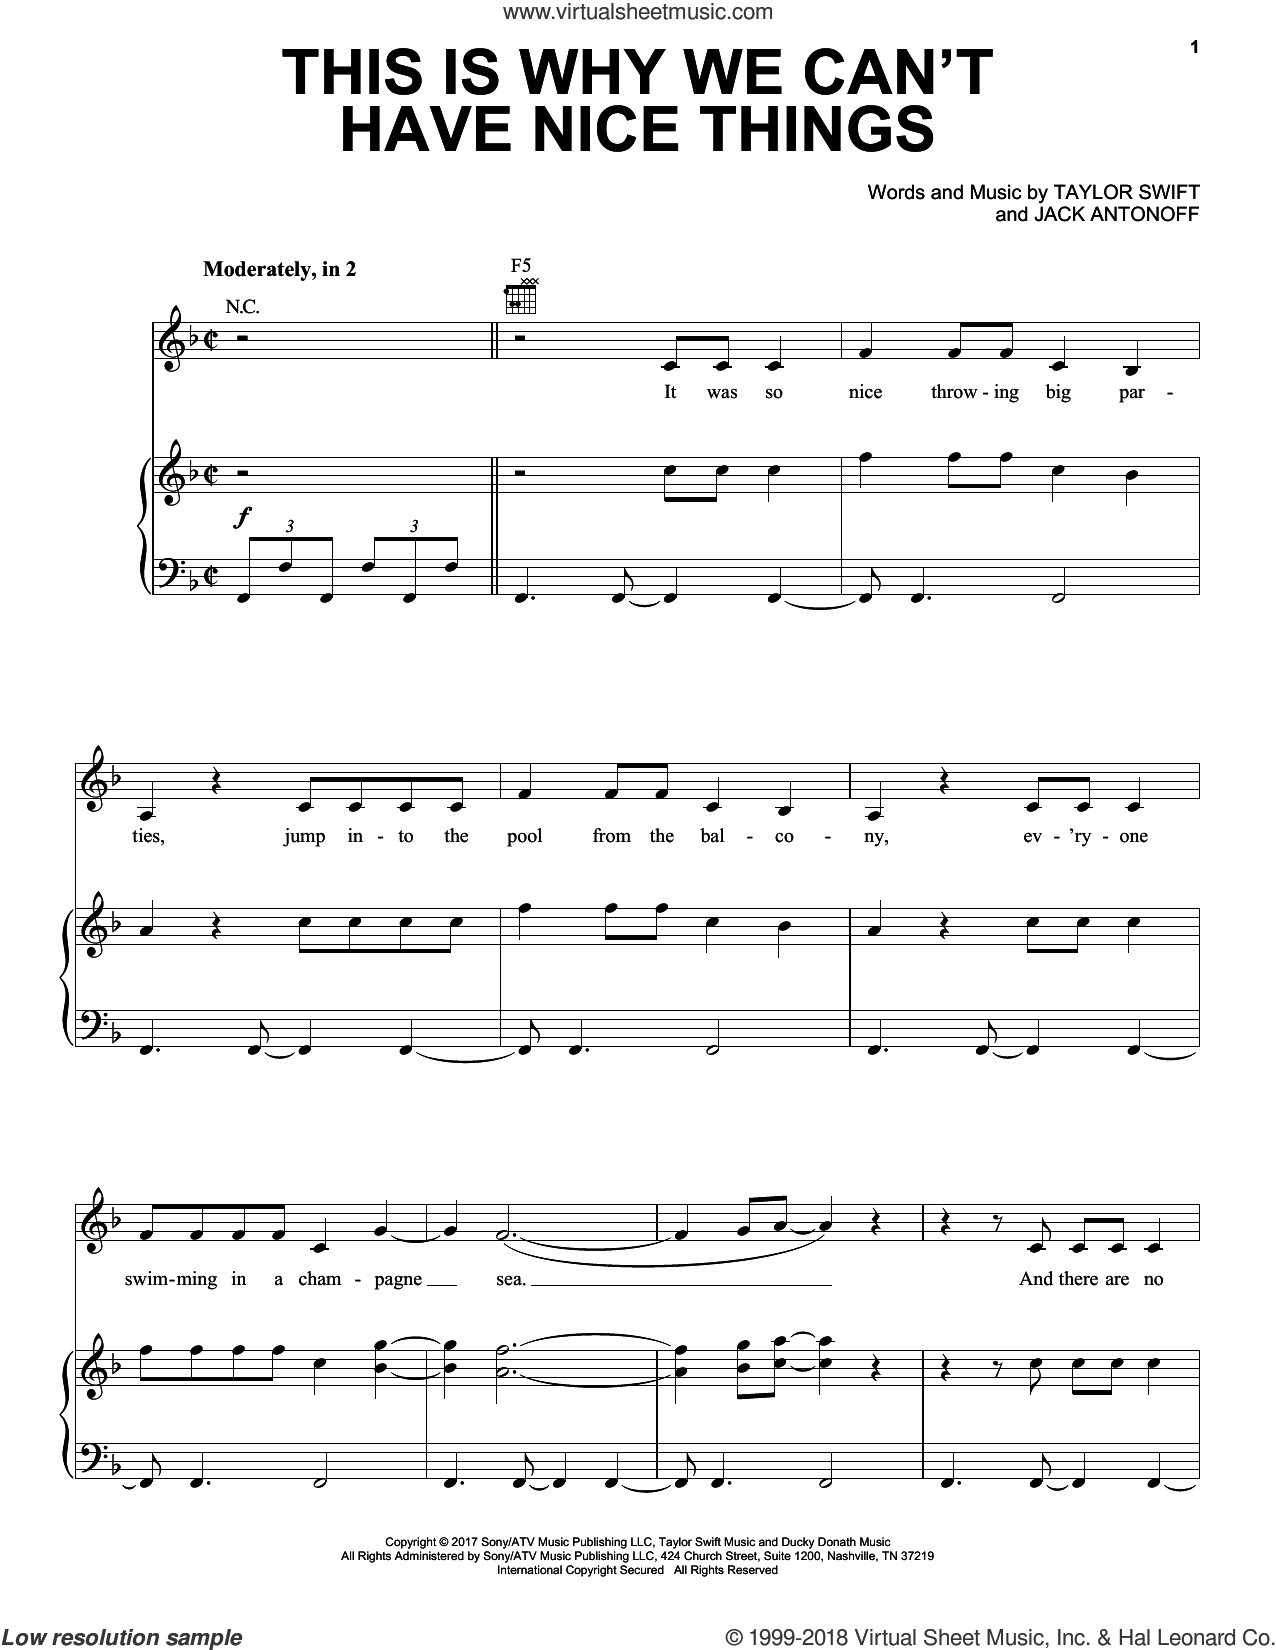 This Is Why We Can't Have Nice Things sheet music for voice, piano or guitar by Taylor Swift and Jack Antonoff, intermediate skill level